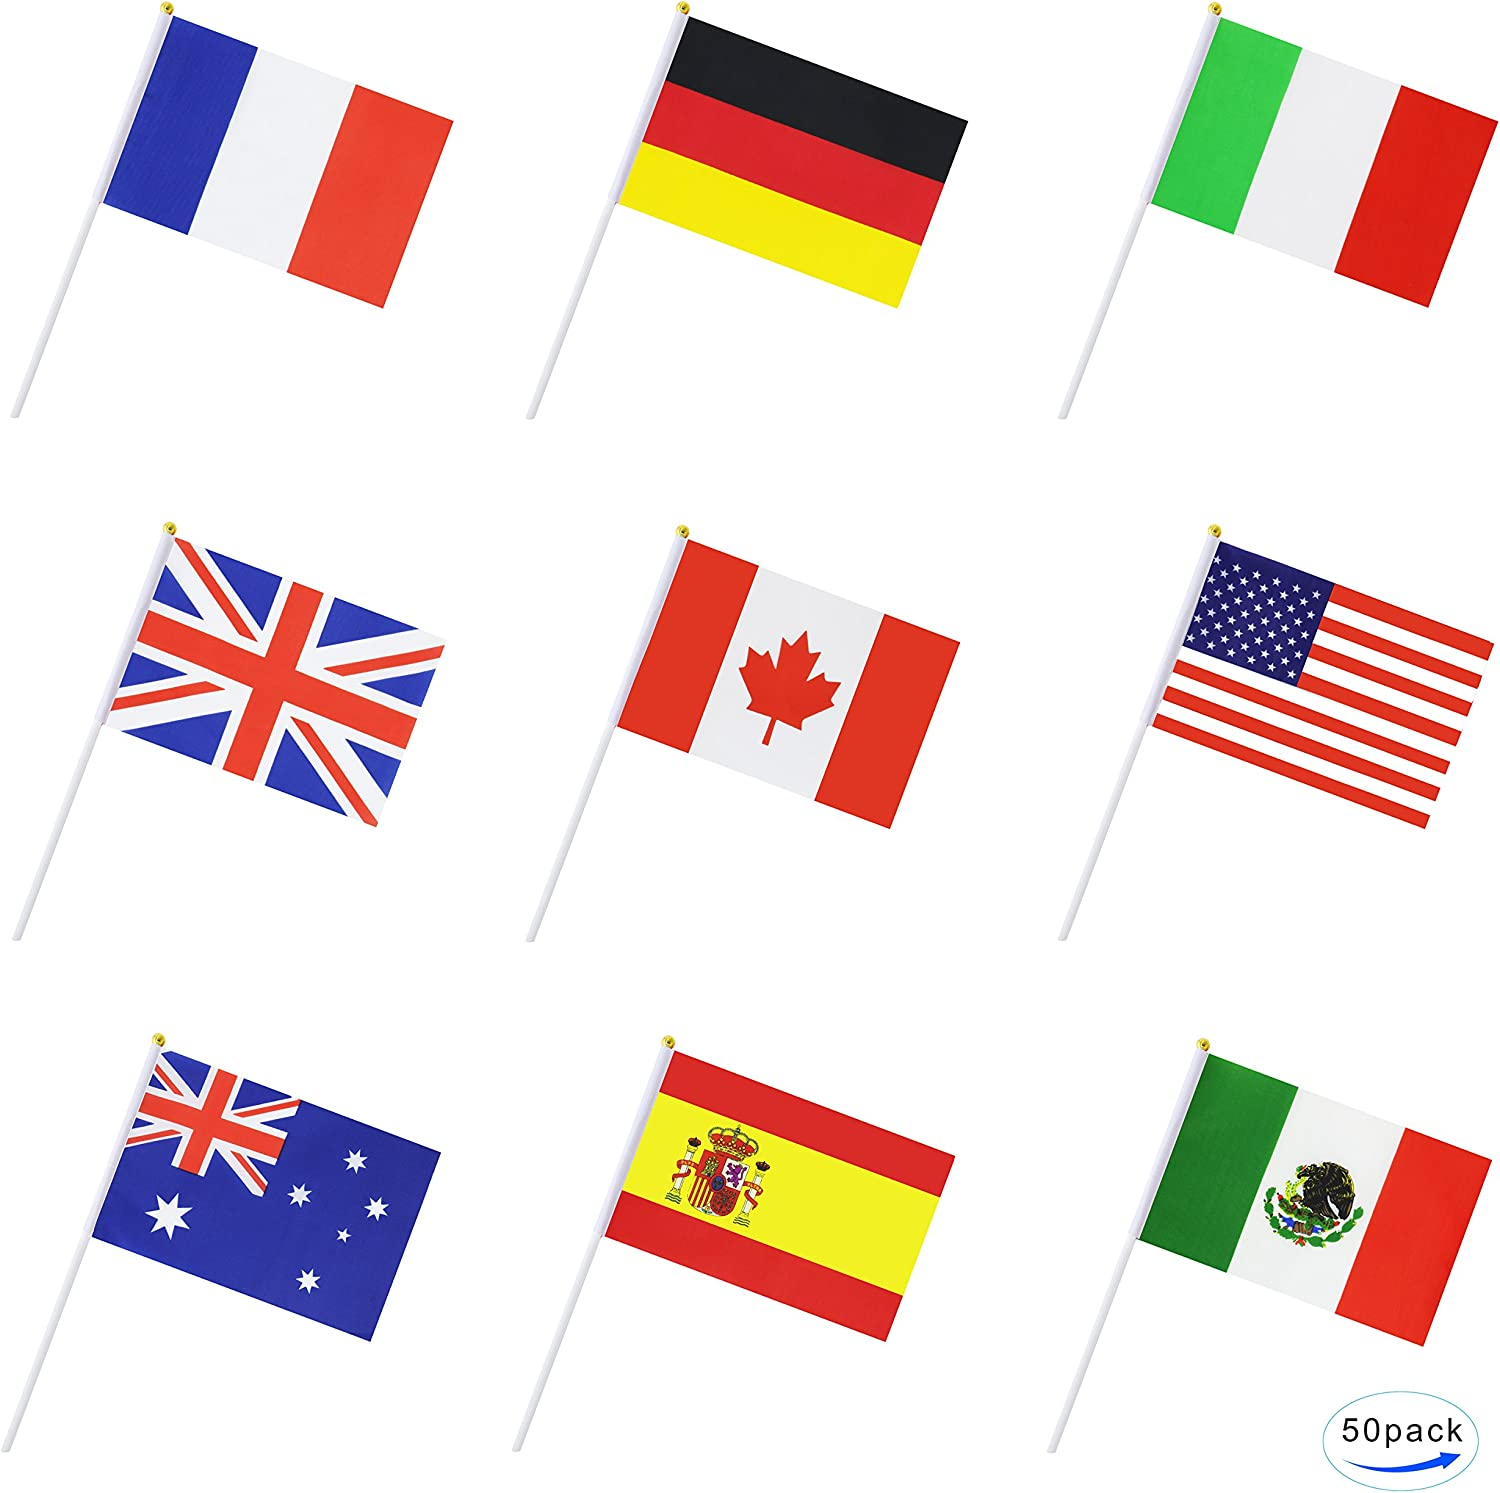 TSMD International World Stick Flag,50 Countries Hand Held Small National Flags Banners On Stick,Party Decorations for Olympic,World Cup,Bar,Sports Events,Festival Events Celebrations